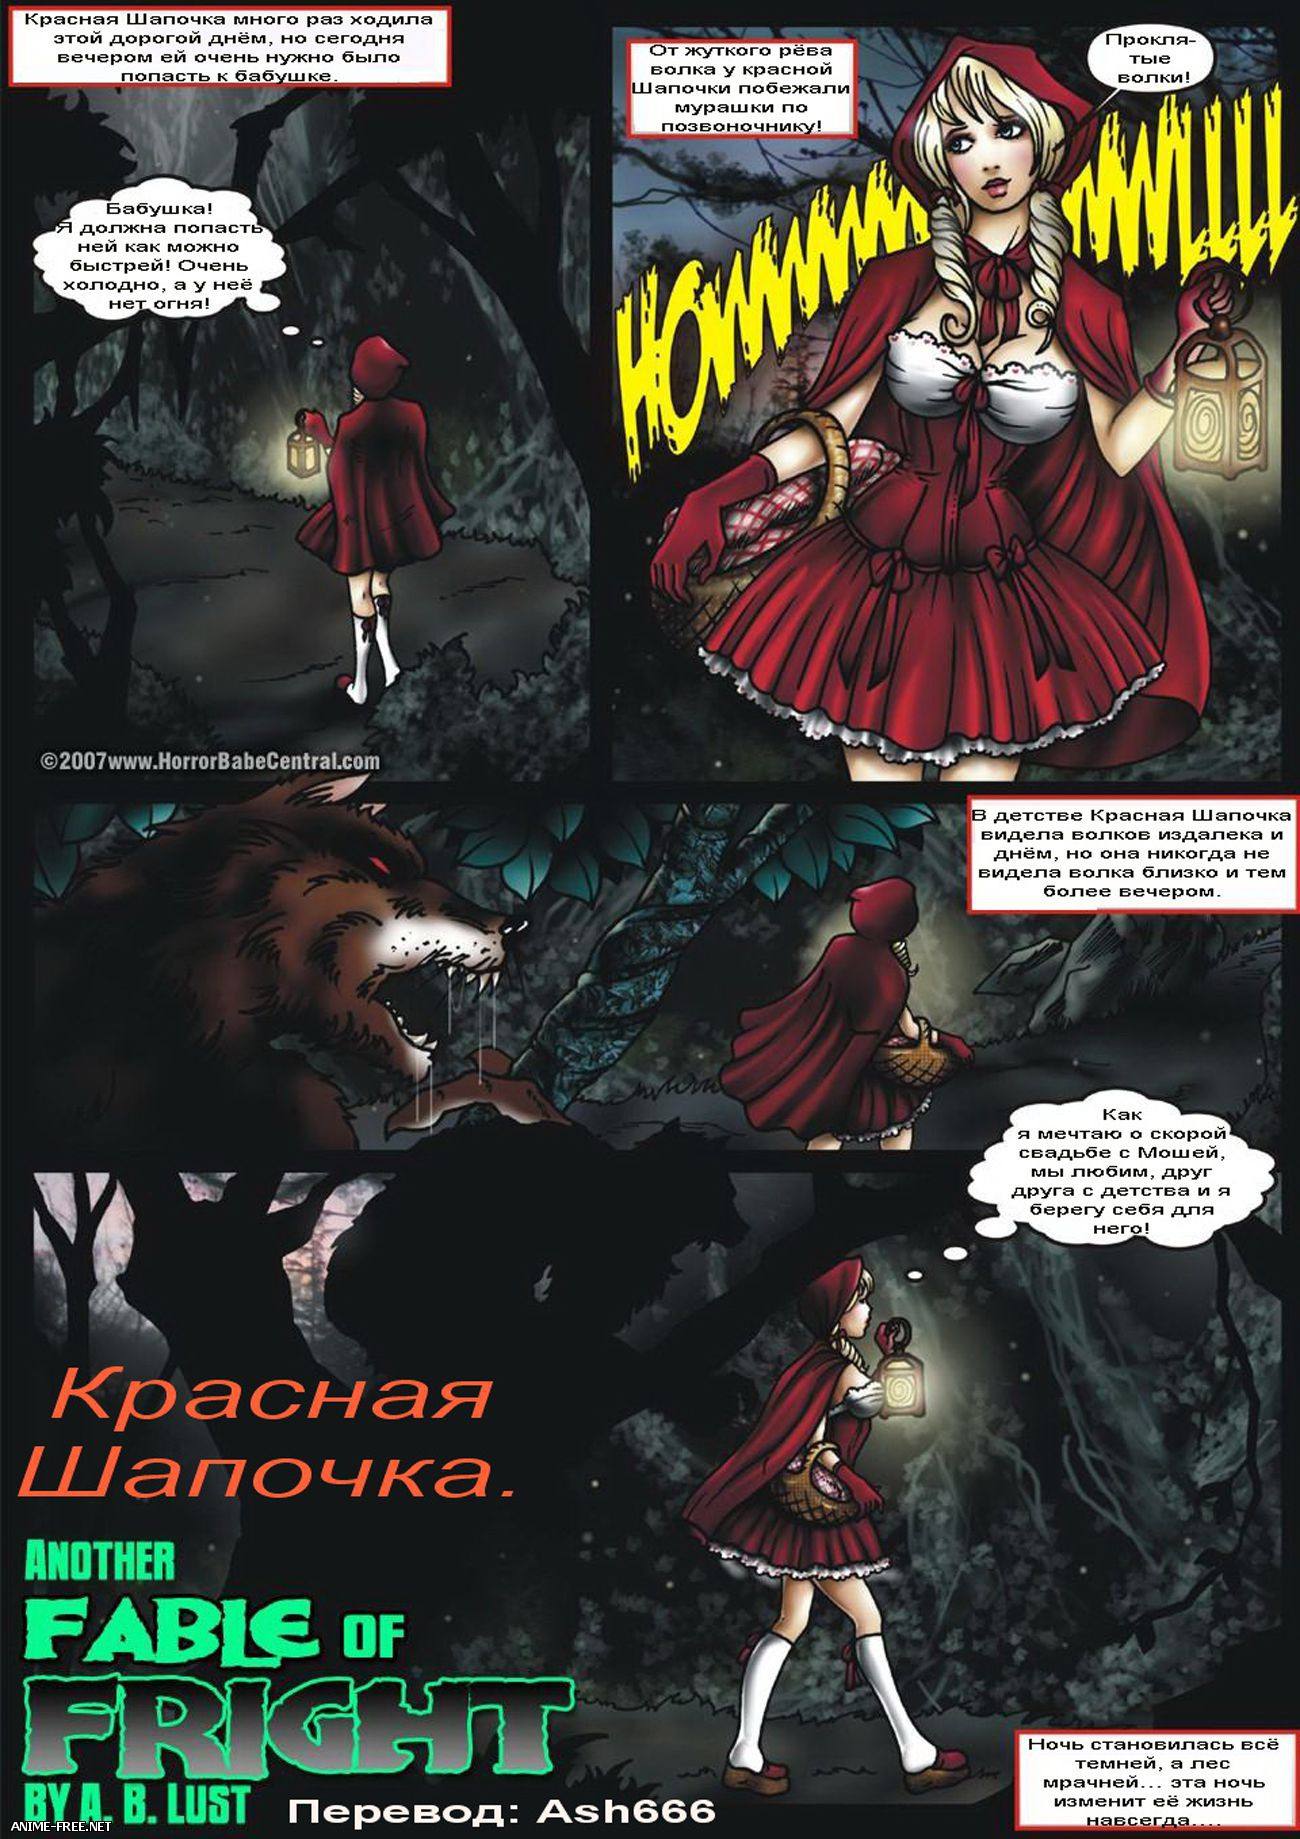 Little Red Riding Hood / Красная Шапочка [Uncen] [ENG,RUS] Porn Comics